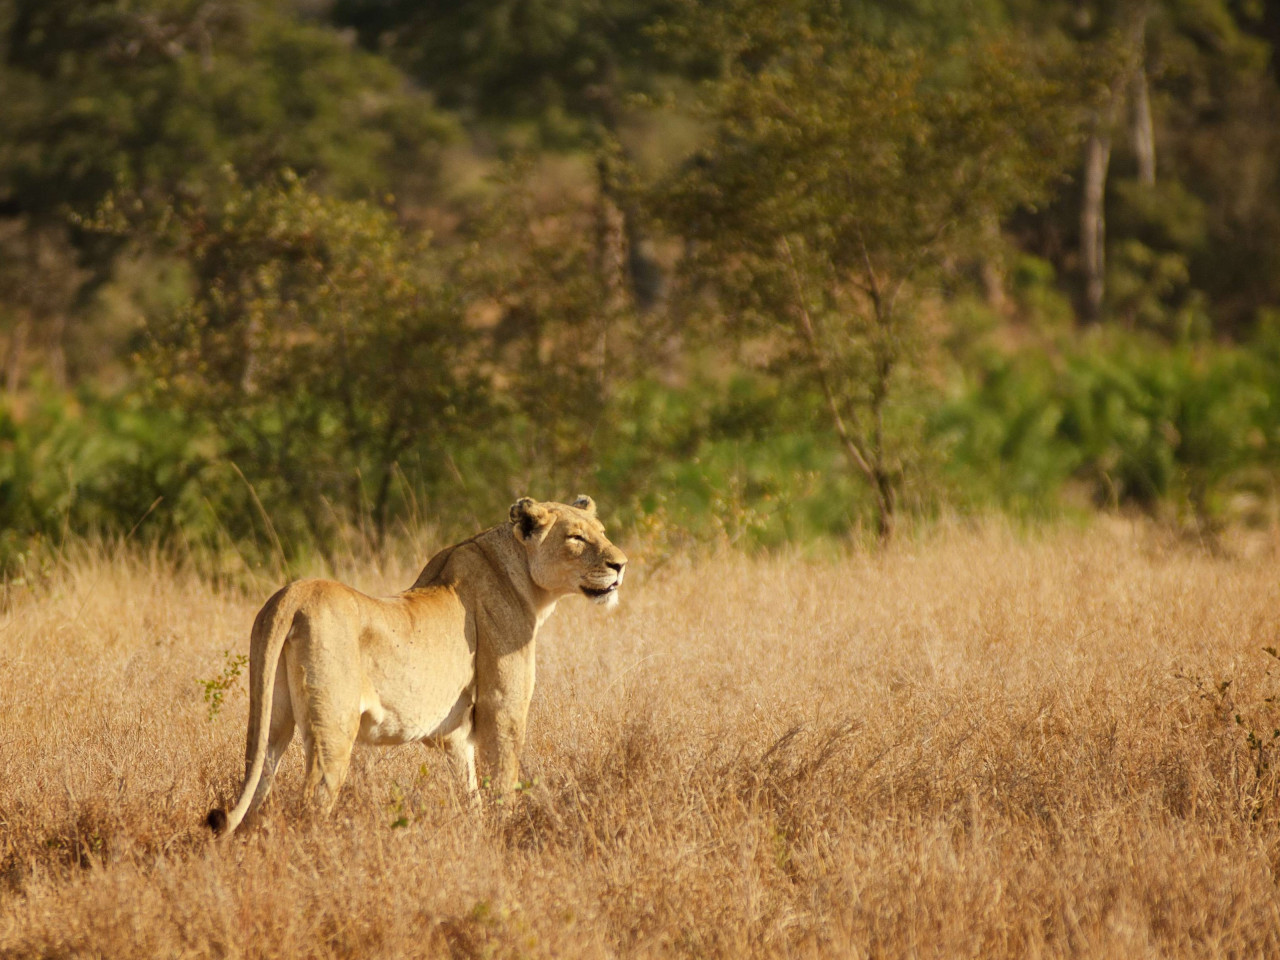 Lioness in Kruger National Park wallpaper 1280x960